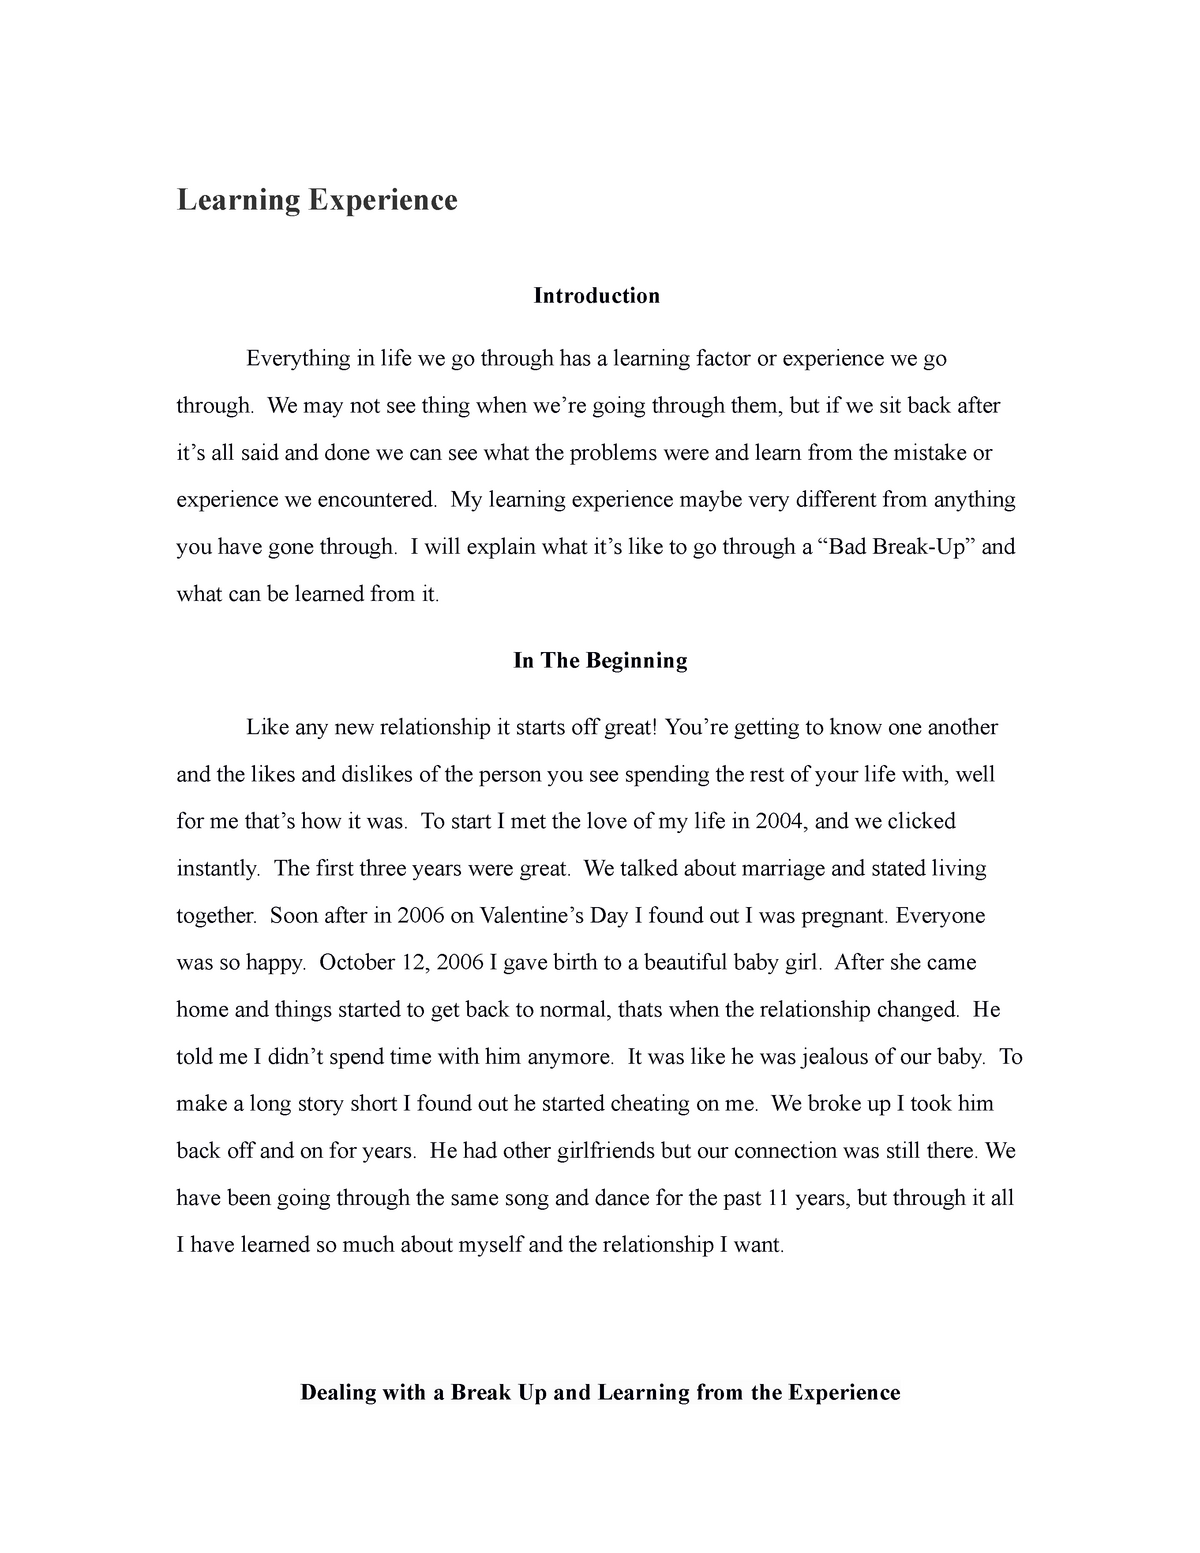 Learning experience paper - PSYC 6300 Stat for Psy - UH